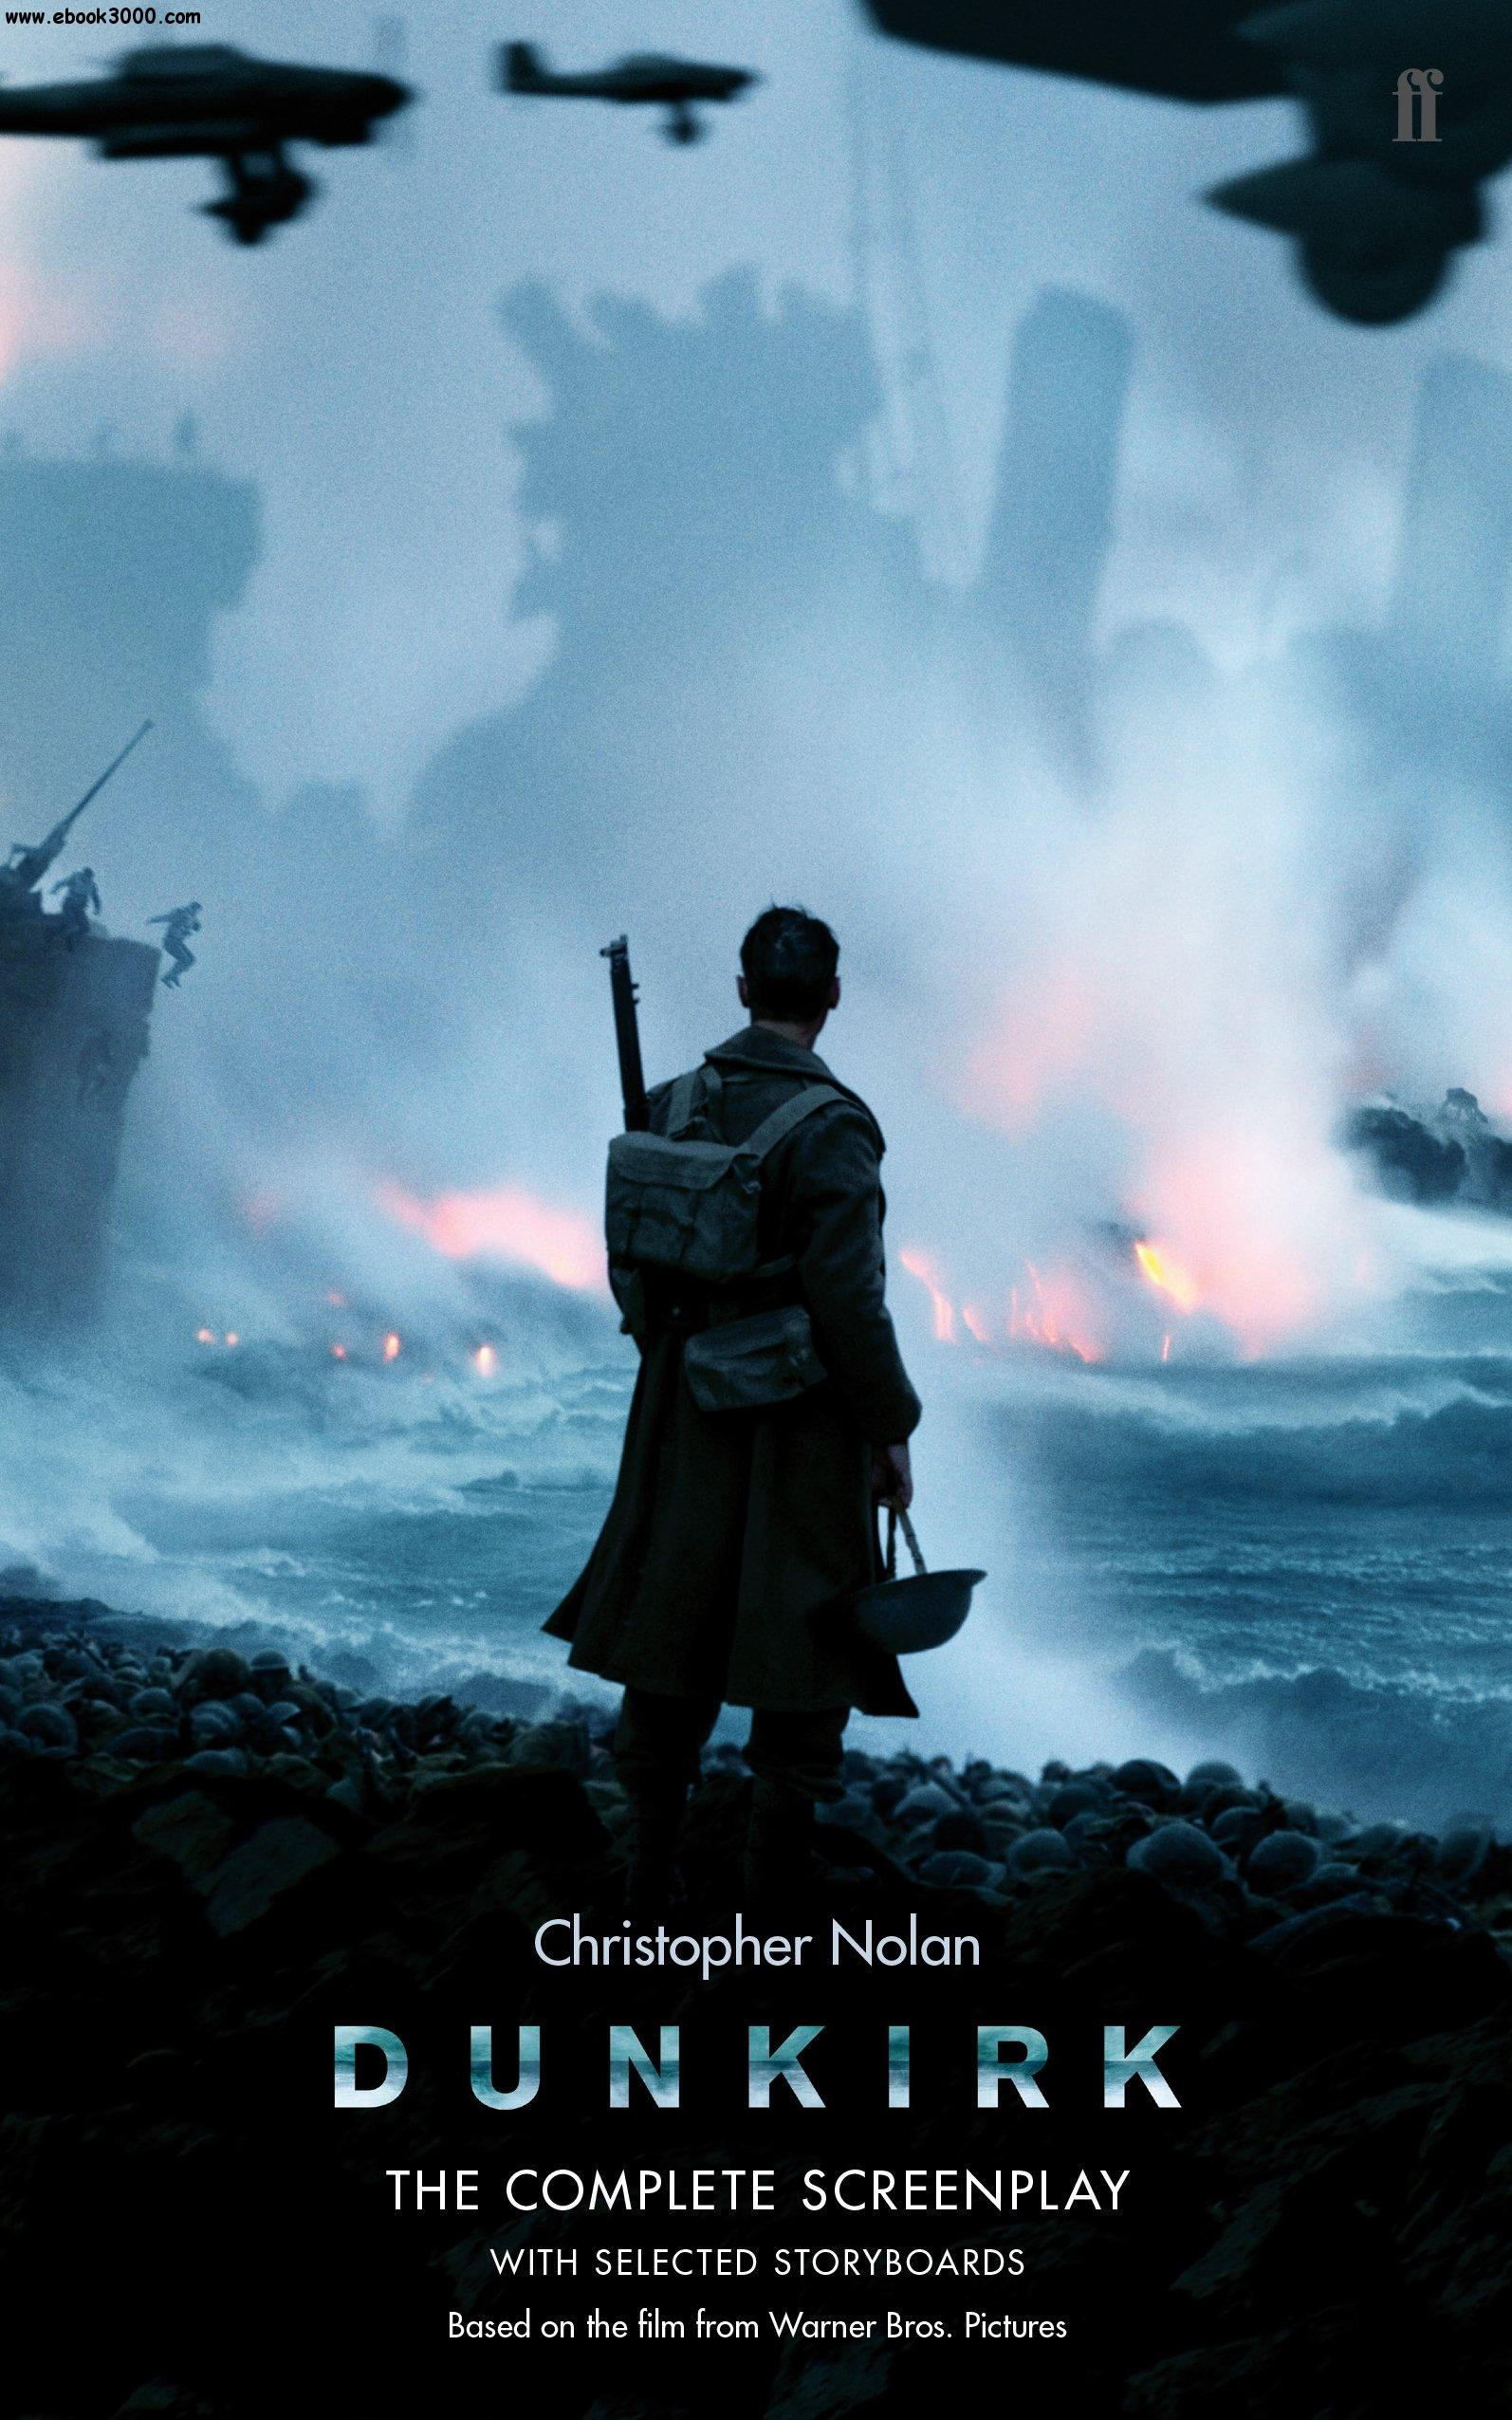 Dunkirk: The Complete Screenplay With Selected Storyboards